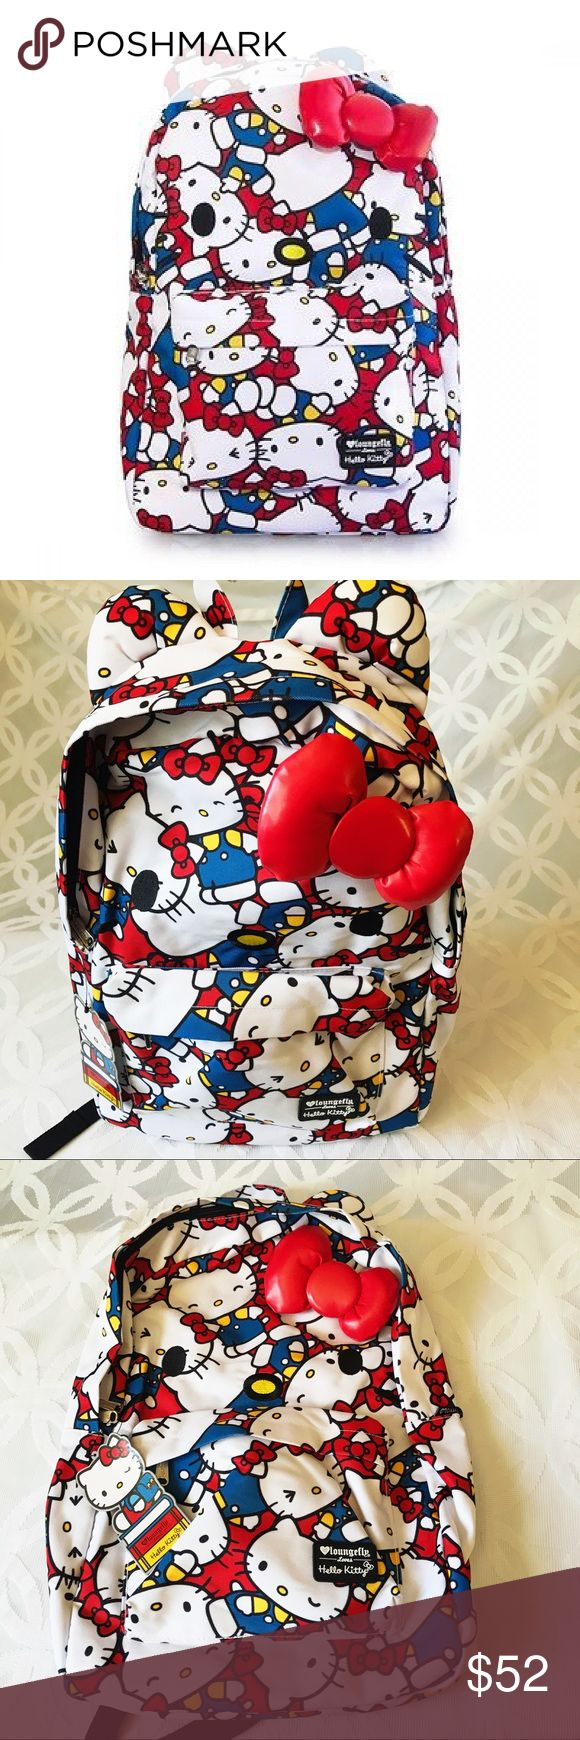 """Loungefly Loves Hello Kitty 3-D Bow Backpack NWT Loungefly Loves Hello Kitty 3-D Bow 17"""" Backpack NWT Hello Kitty Bags Backpacks"""